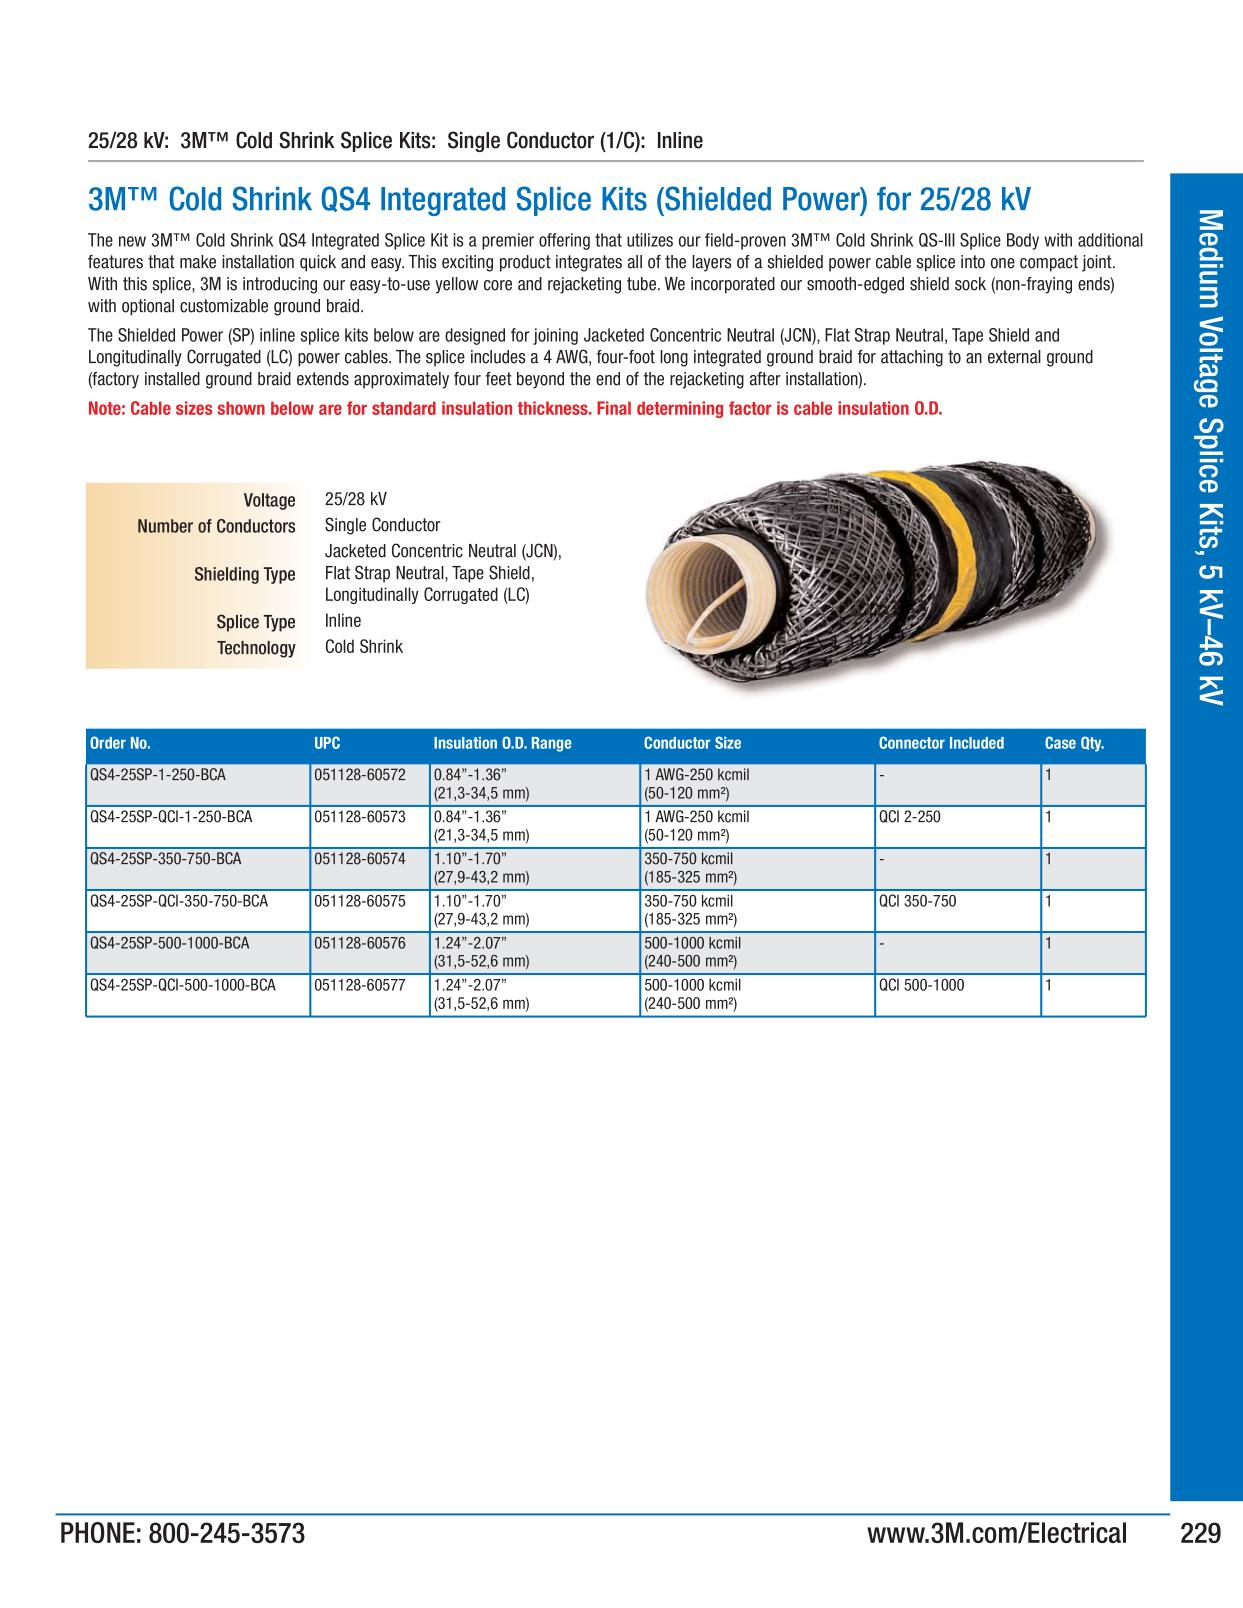 Medium voltage splice kits 5 kv 46 kv 3m electrical products medium voltage splice kits 5 kv 46 kv 3m electrical products page 229 greentooth Choice Image